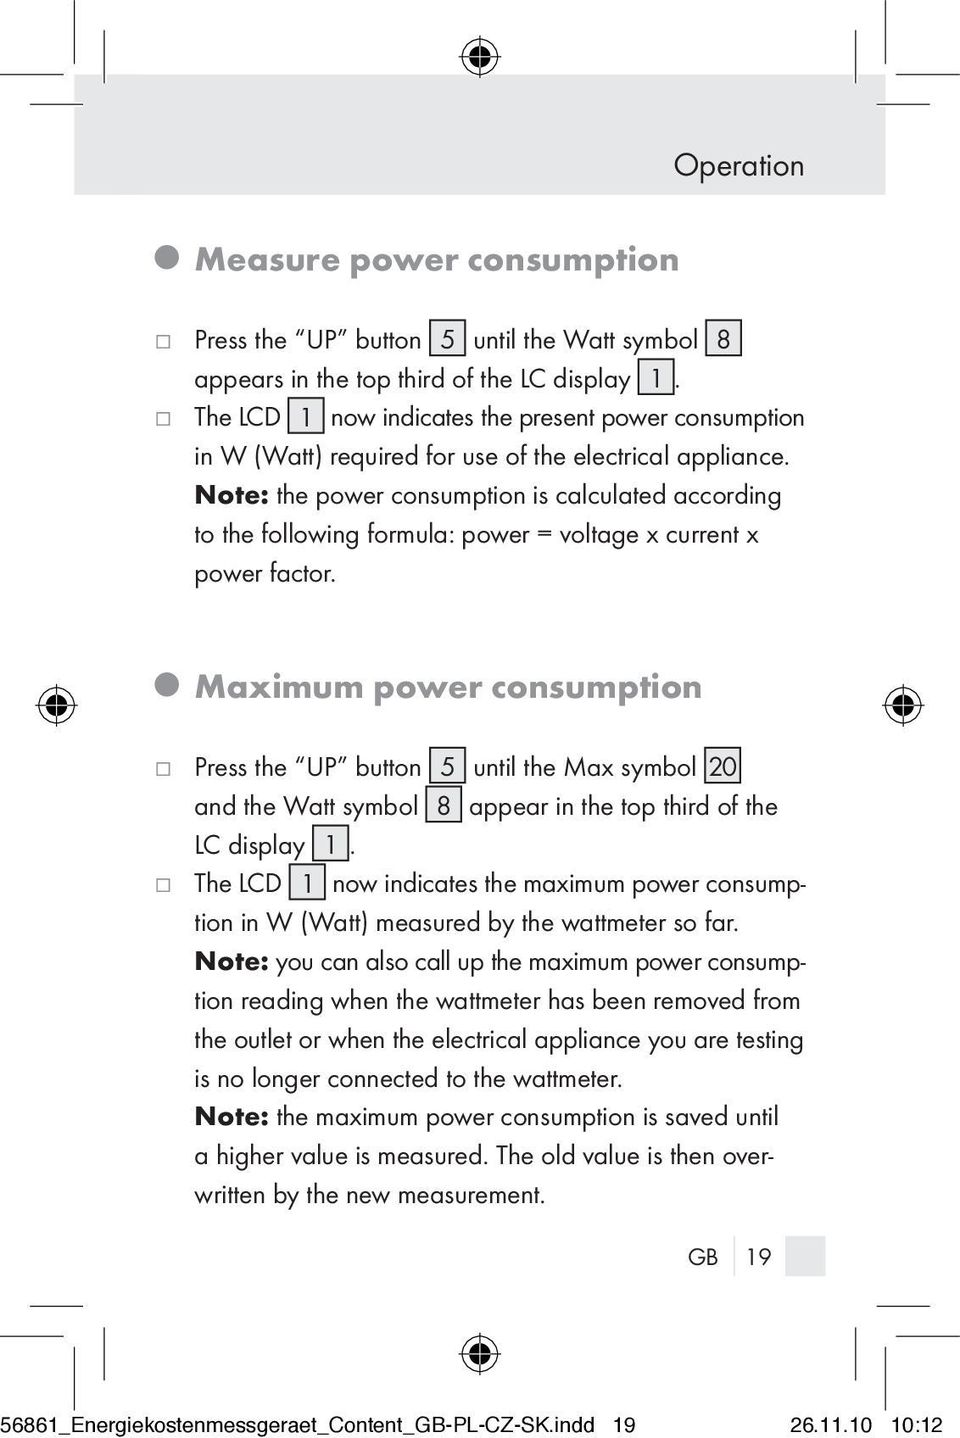 Note: the power consumption is calculated according to the following formula: power = voltage x current x power factor.